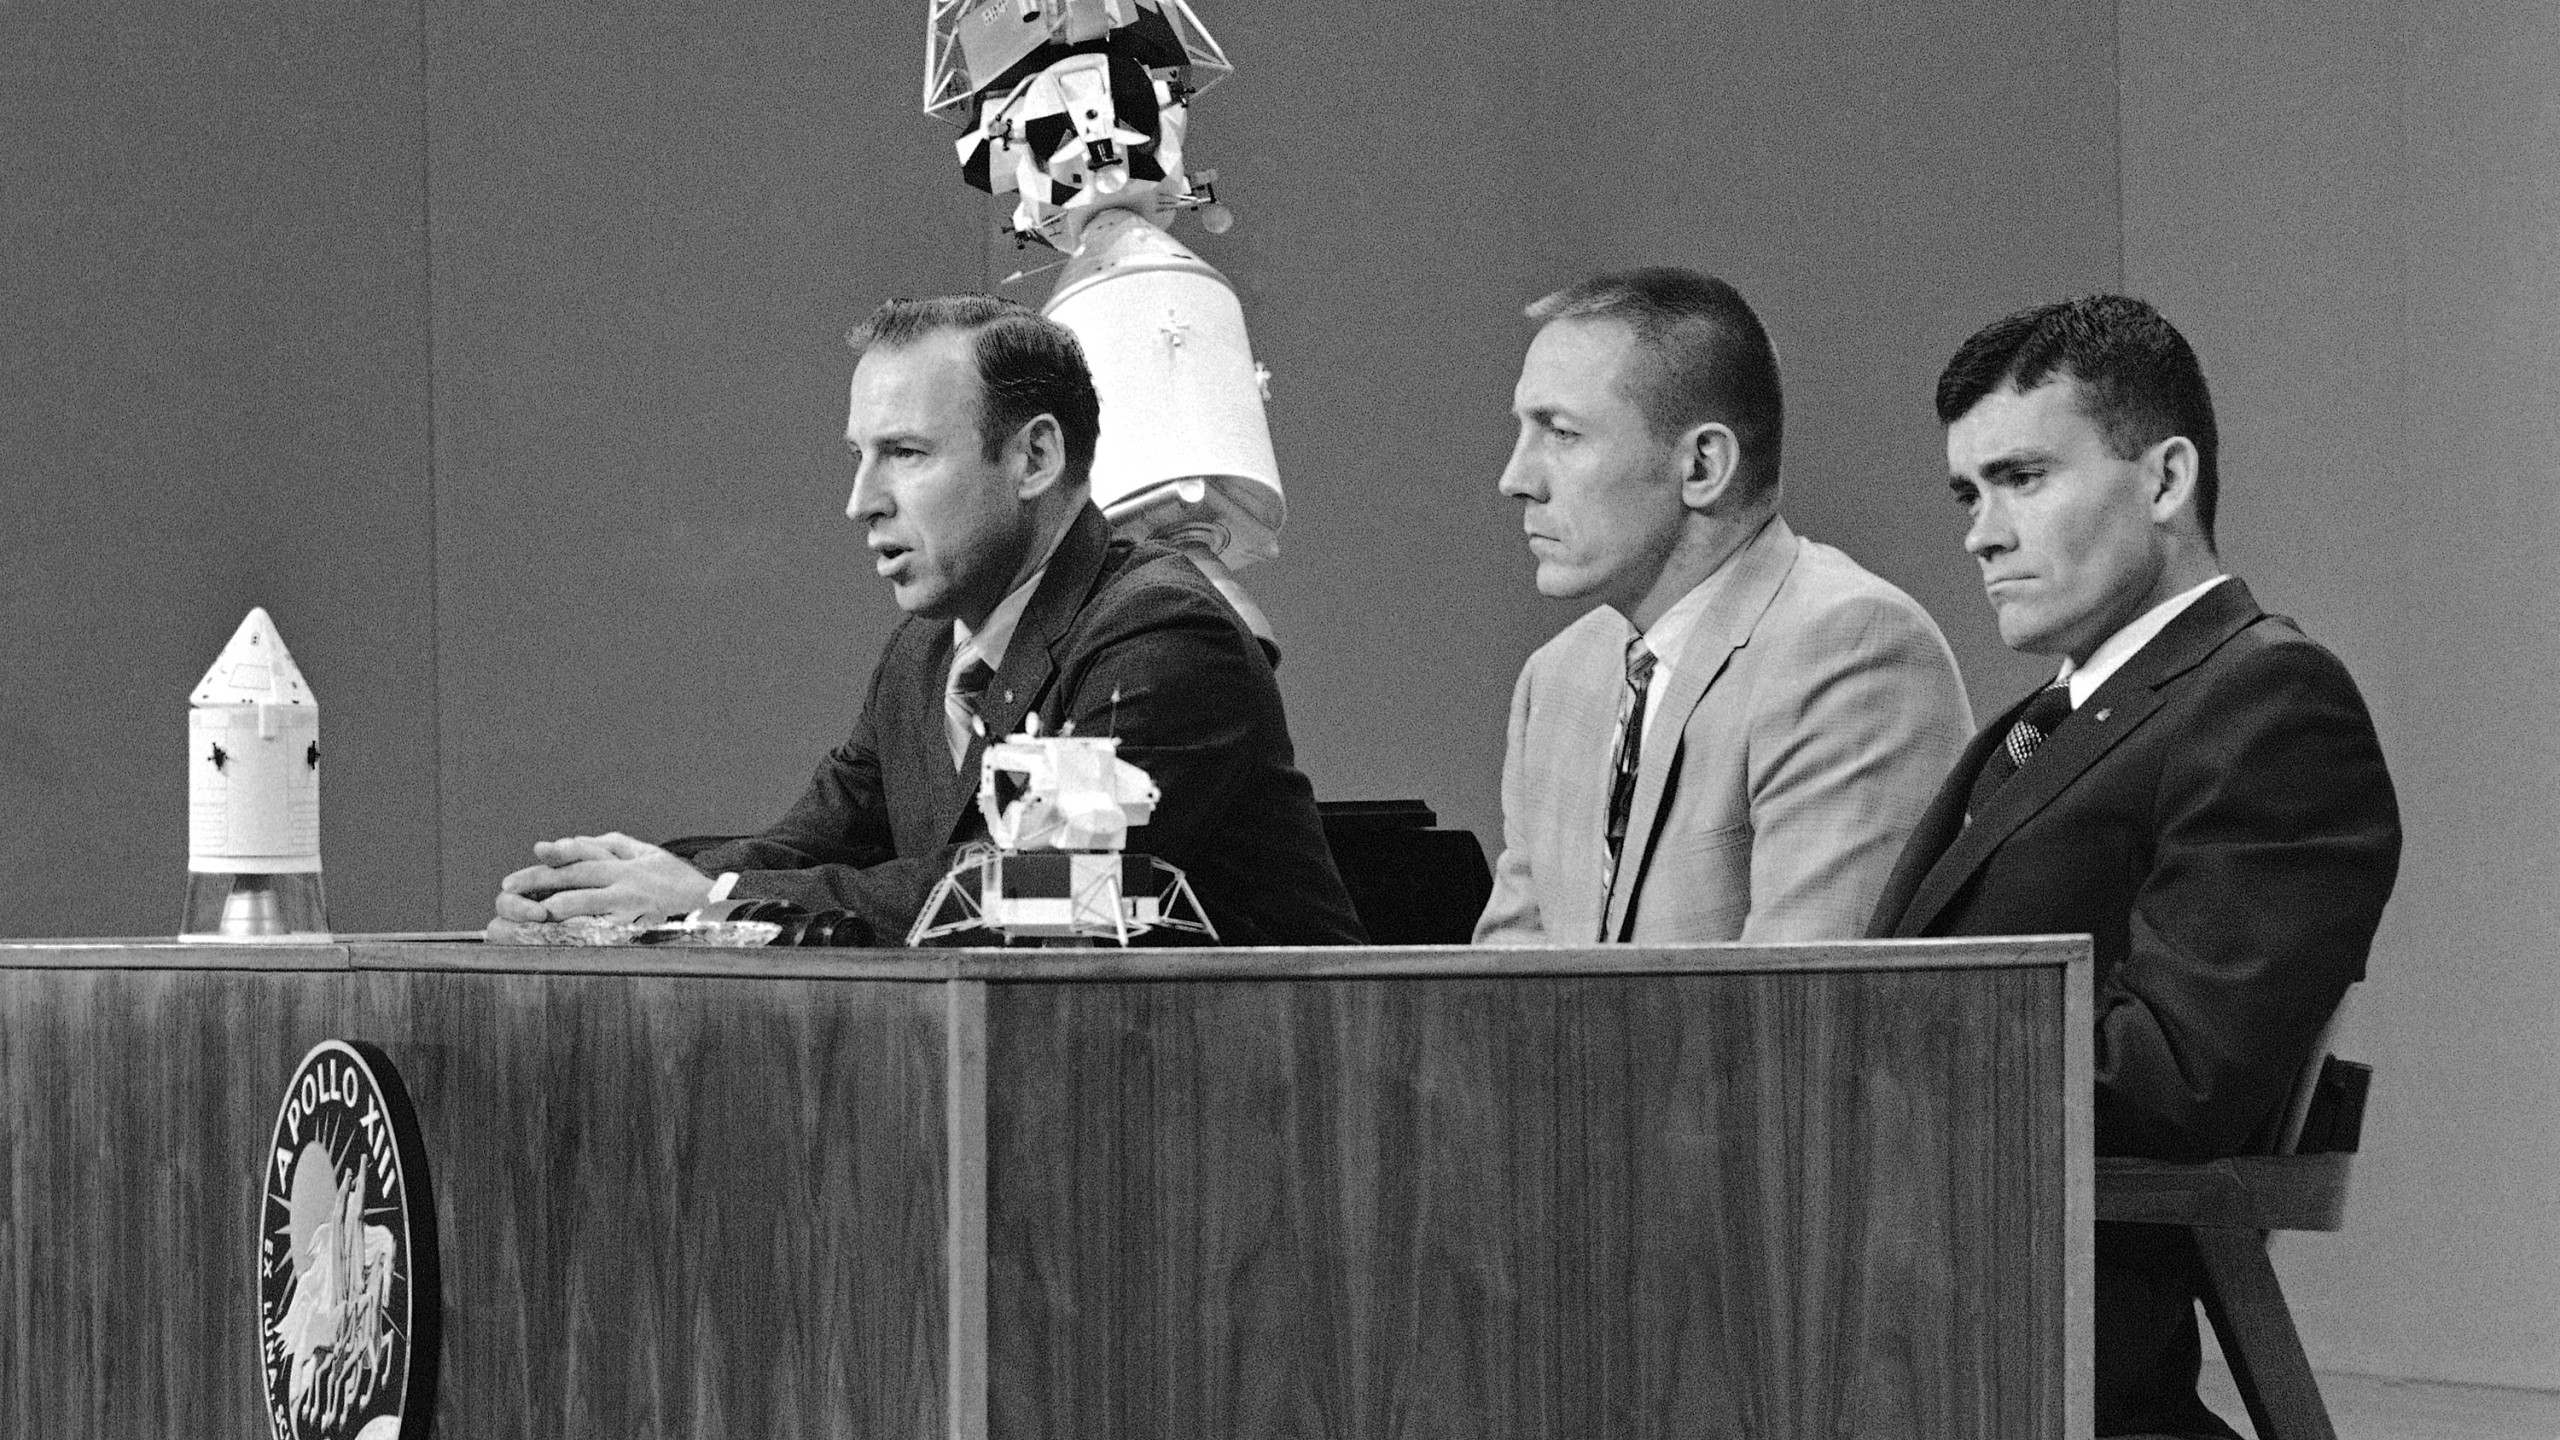 James Lovell, jim lovell, John Swigert, Fred Haise